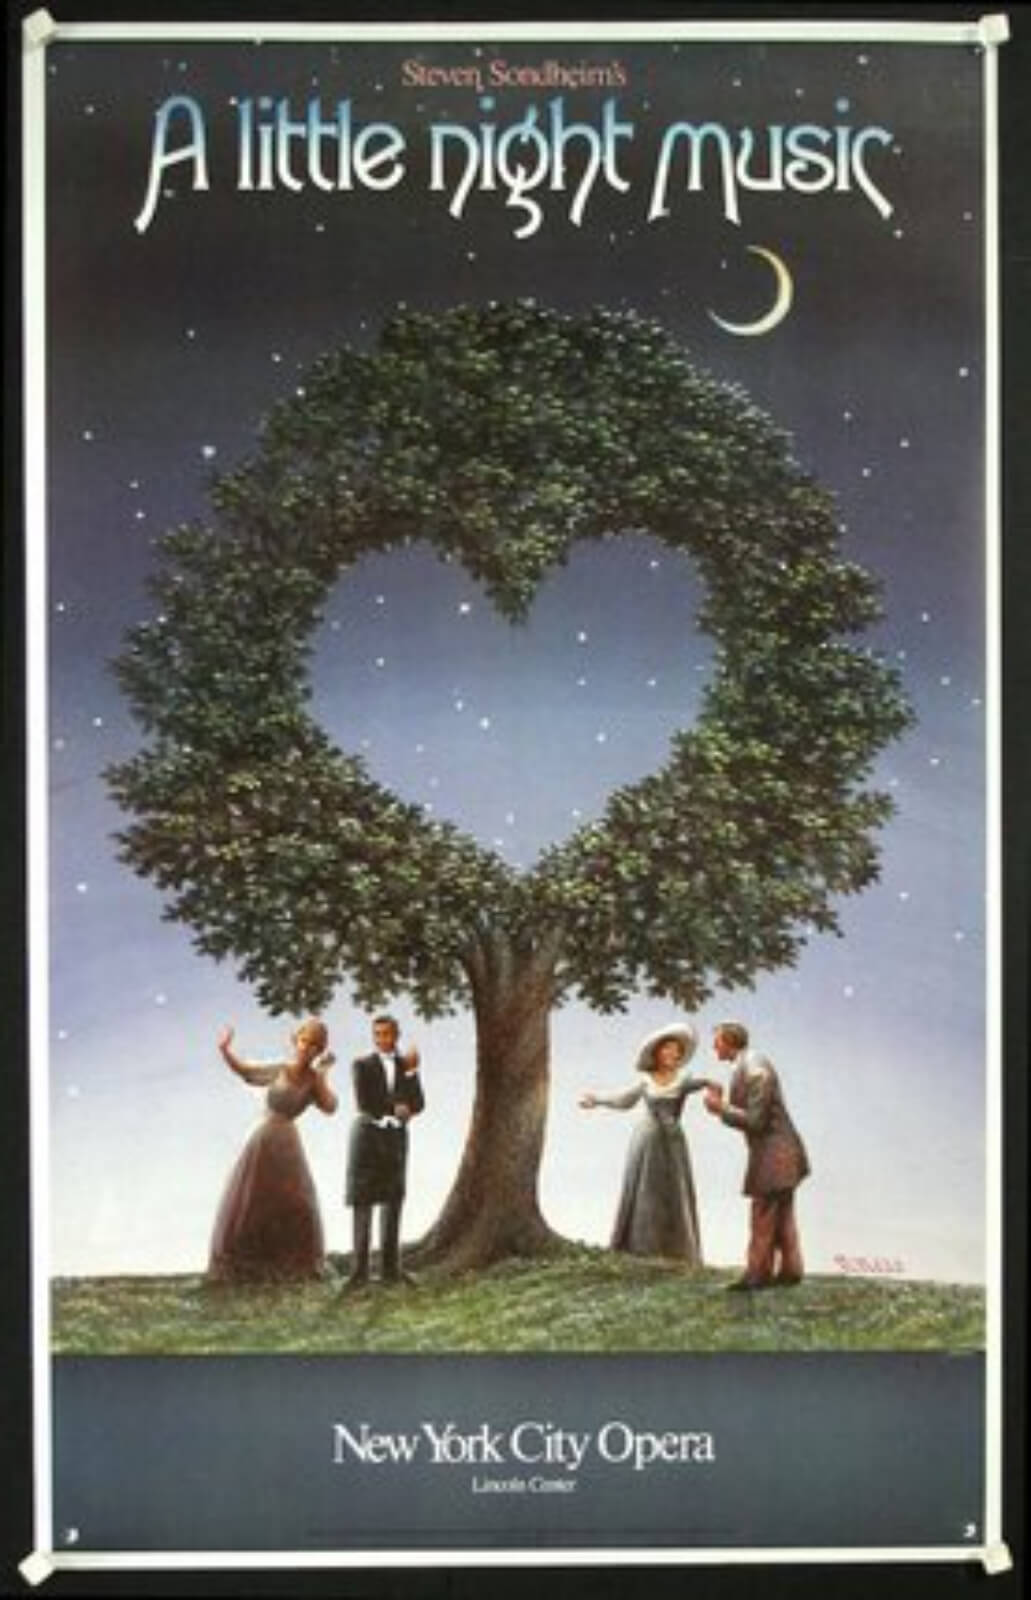 The official production poster of the New York City opera production containing 4 characters standing under a tree